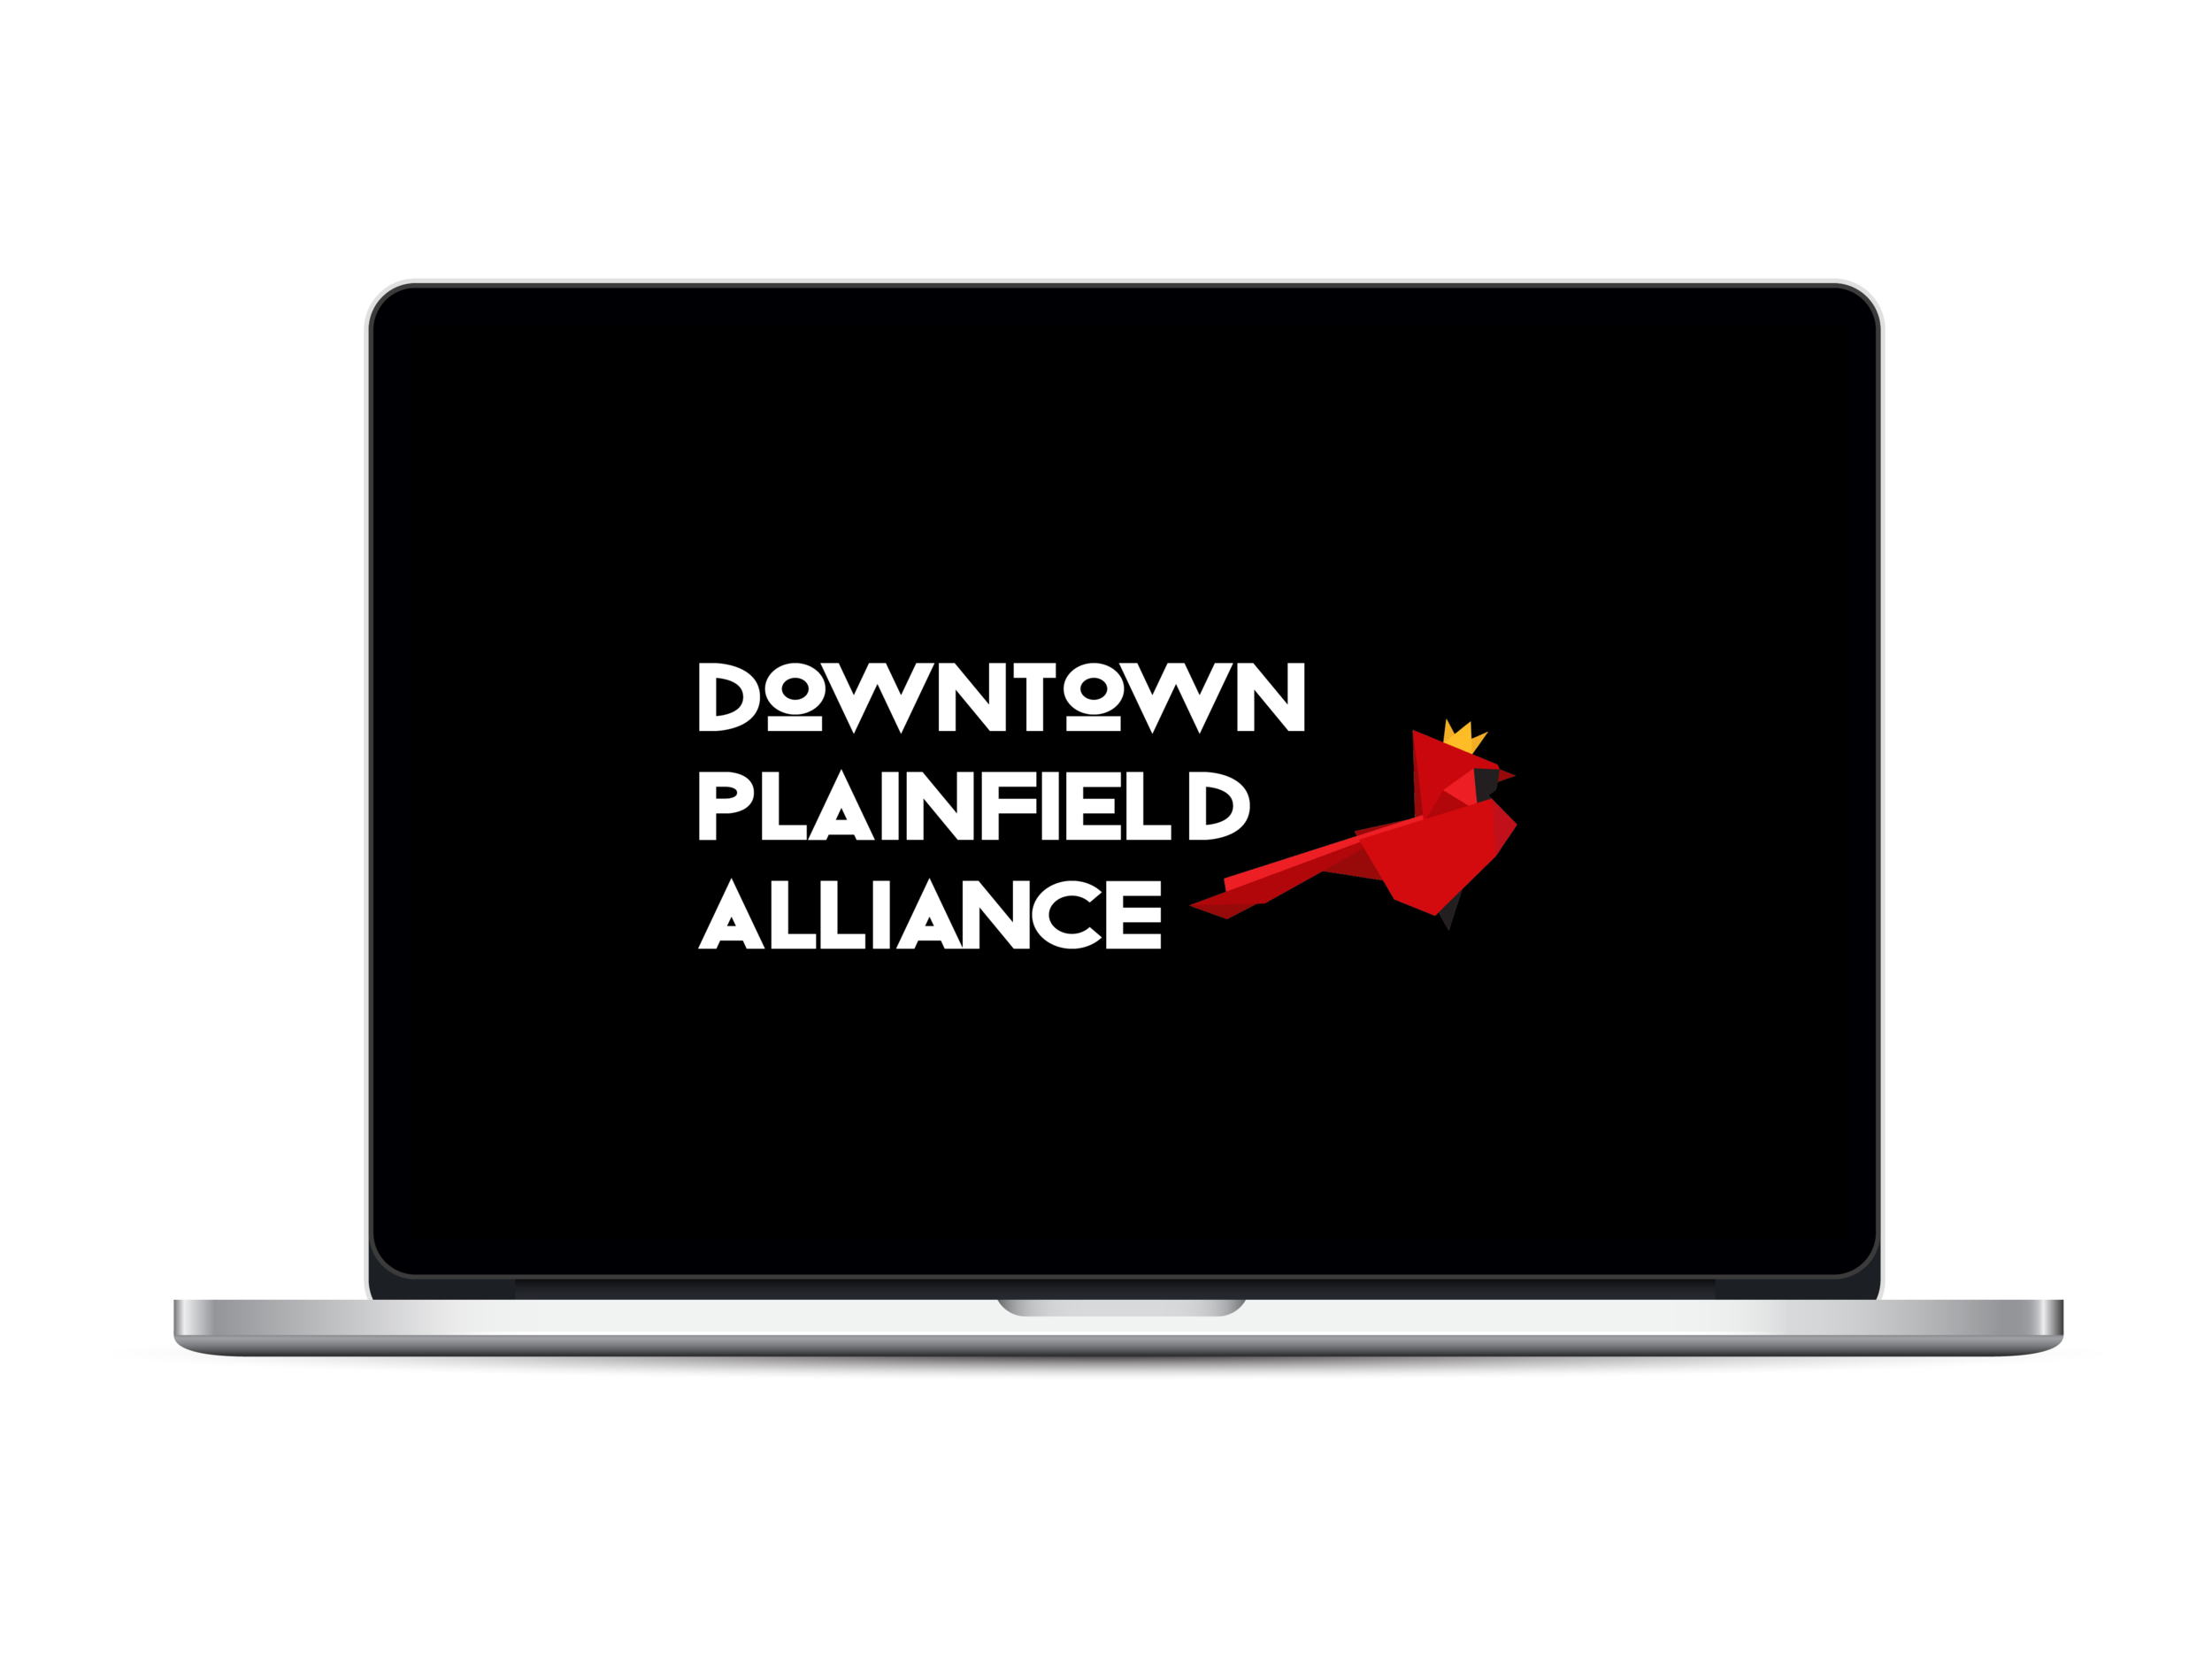 Downtown Plainfield Alliance March 15, 2017    A nonprofit Downtown organization that combines marketing, volunteerism, crowdfunding and information exchange to fill an economic development void in a local community.